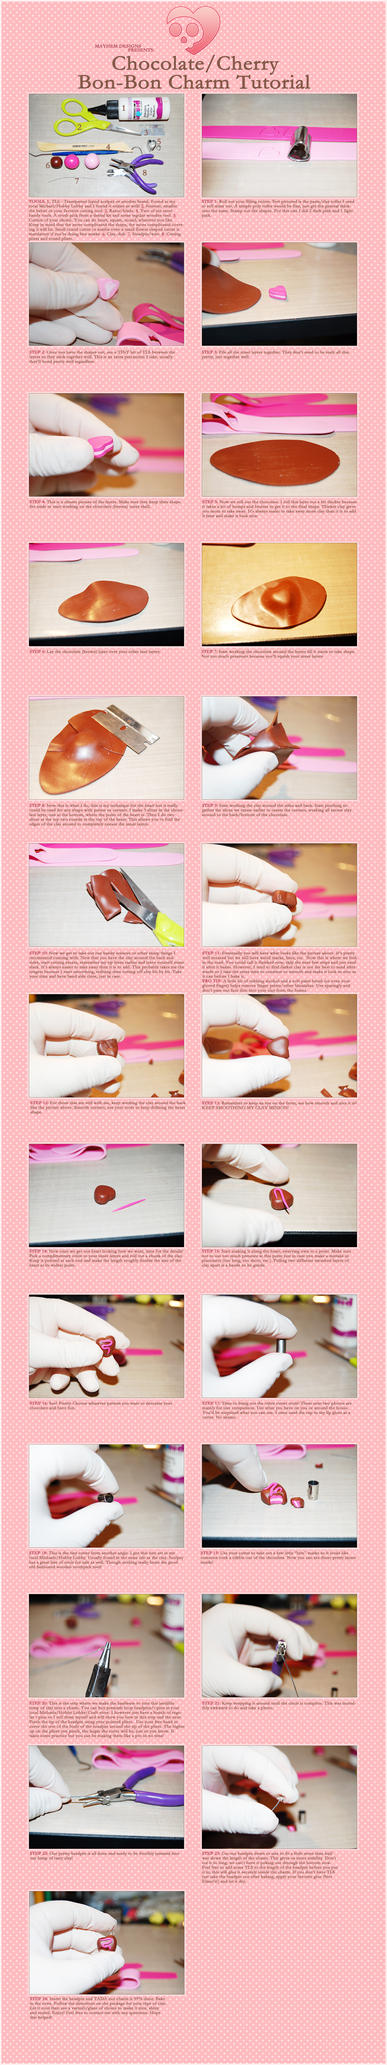 Choco BonBon Charm Tutorial by MissyMayhem